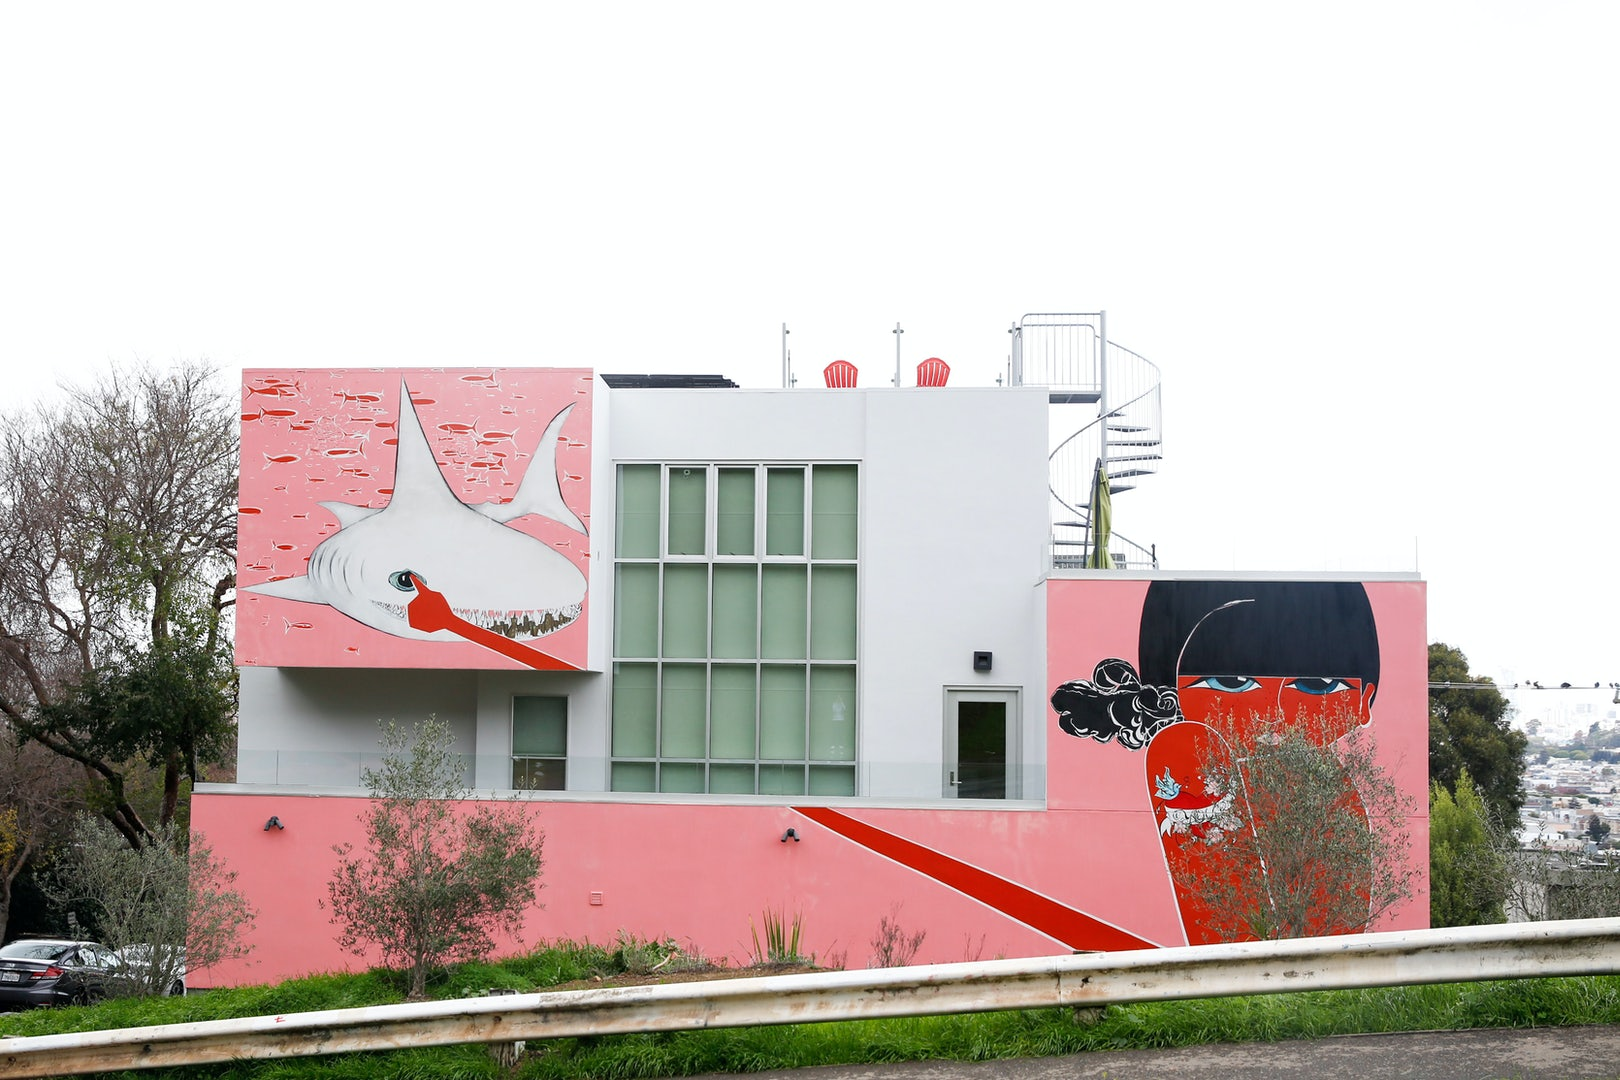 House with pink and a white shark painted on